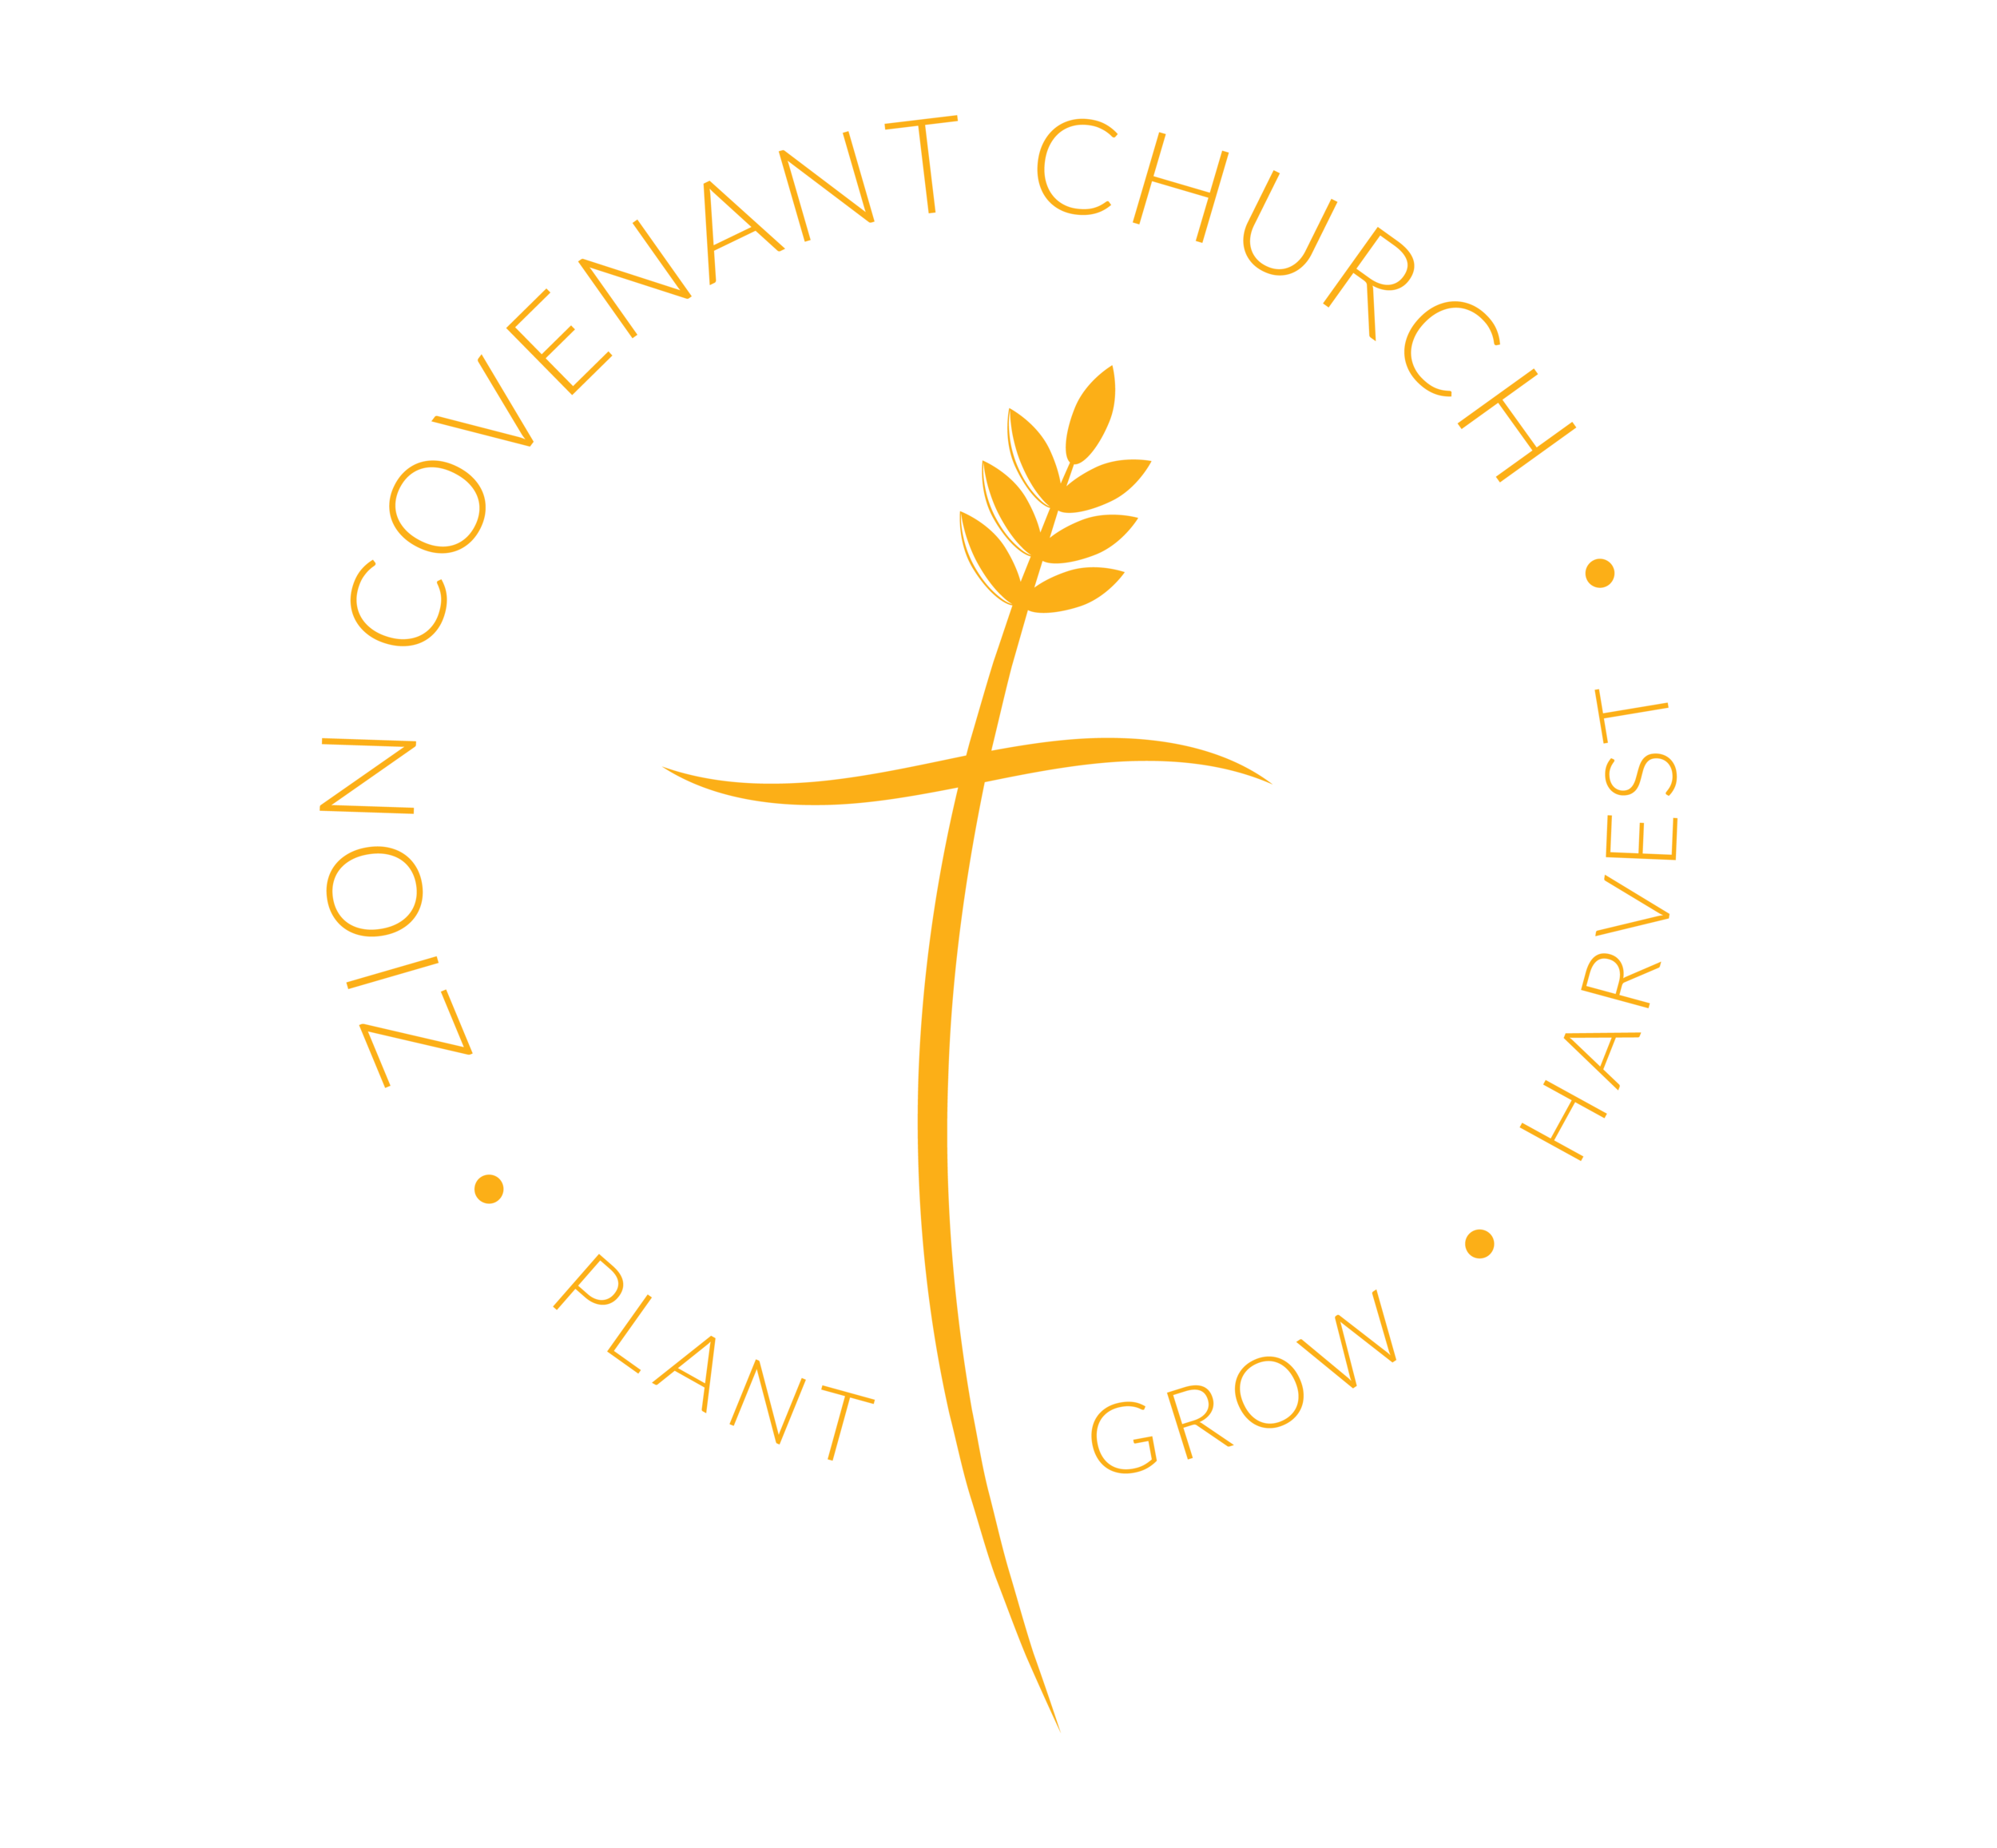 Zion Covenant Church Plant Grow Harvest Watermark